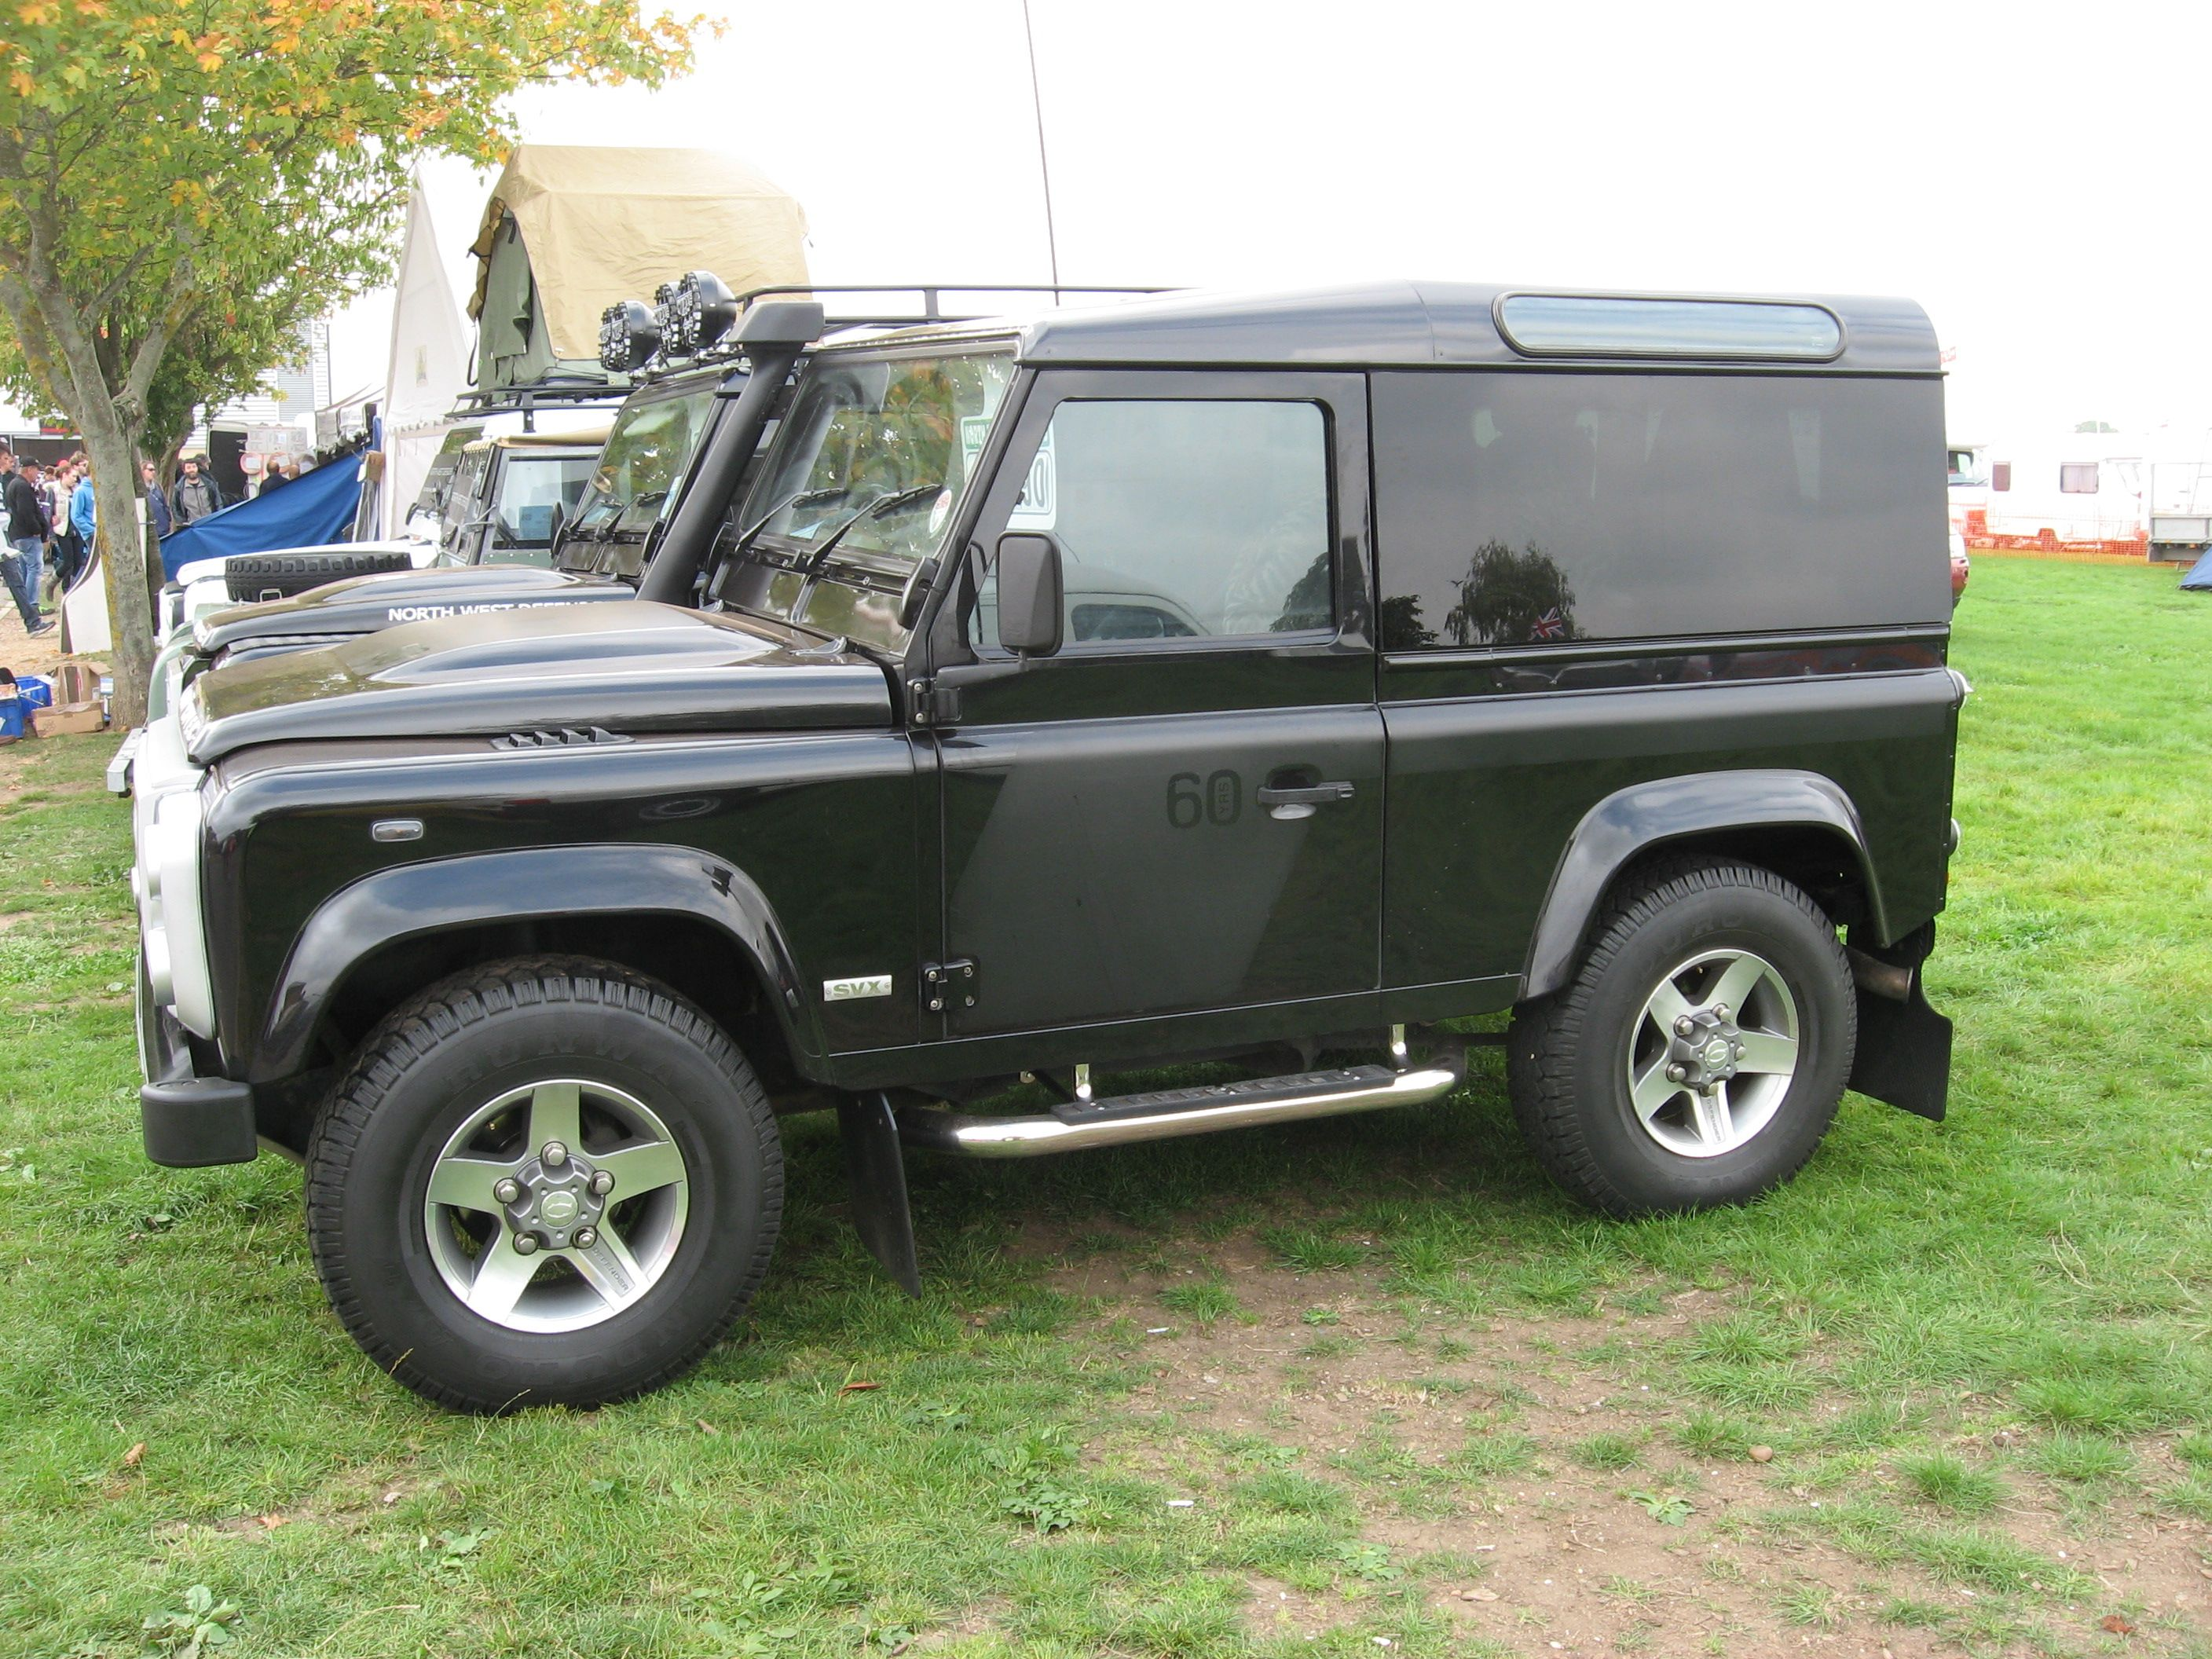 online chequer derby defender logo store for checker telford parts your manchester landrover go to in is and rover plates offroad supplier land